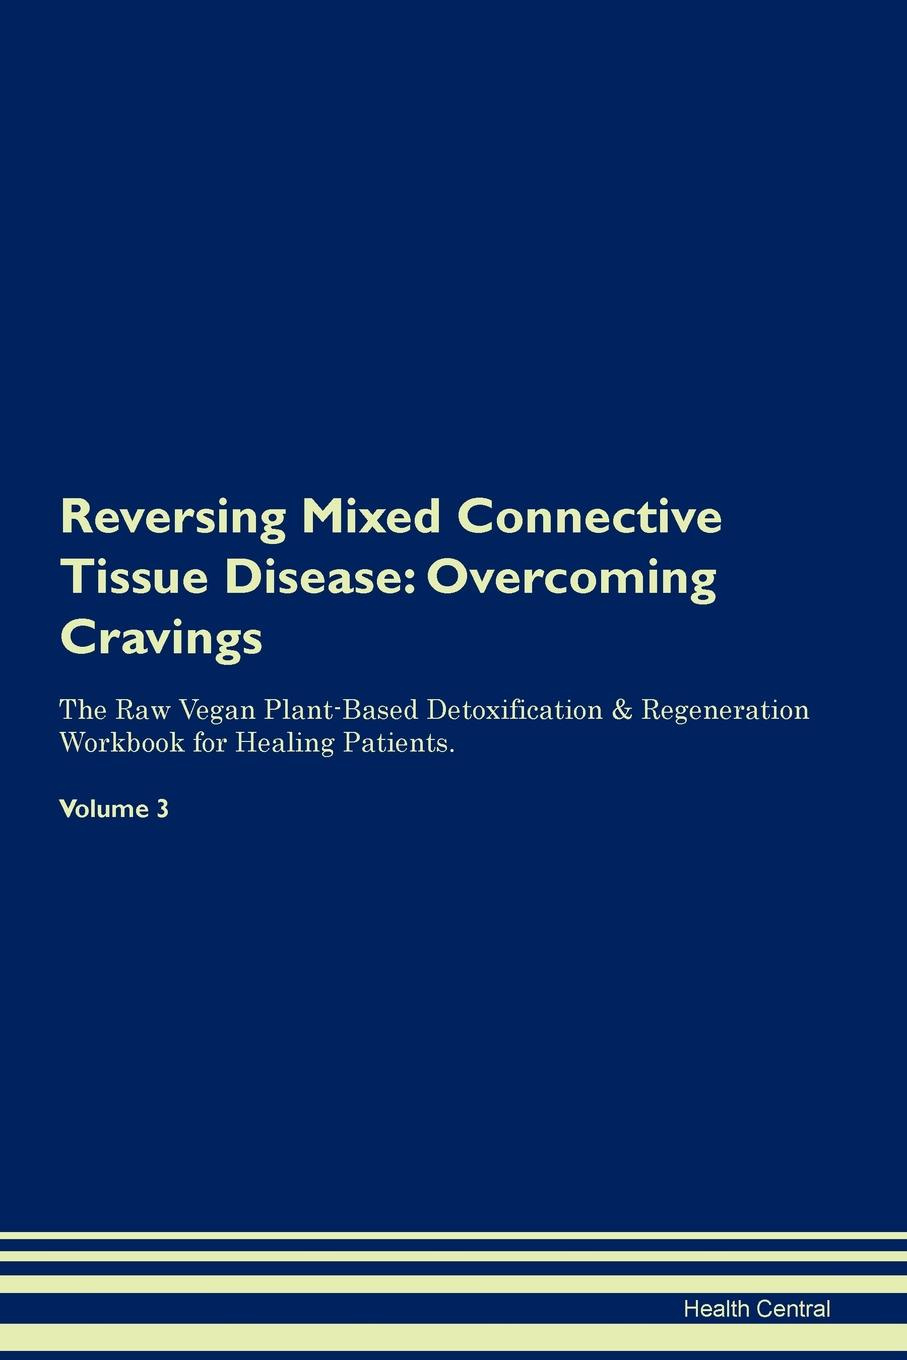 Фото - Health Central Reversing Mixed Connective Tissue Disease. Overcoming Cravings The Raw Vegan Plant-Based Detoxification & Regeneration Workbook for Healing Patients. Volume 3 health central reversing extramammary paget s disease overcoming cravings the raw vegan plant based detoxification regeneration workbook for healing patients volume 3